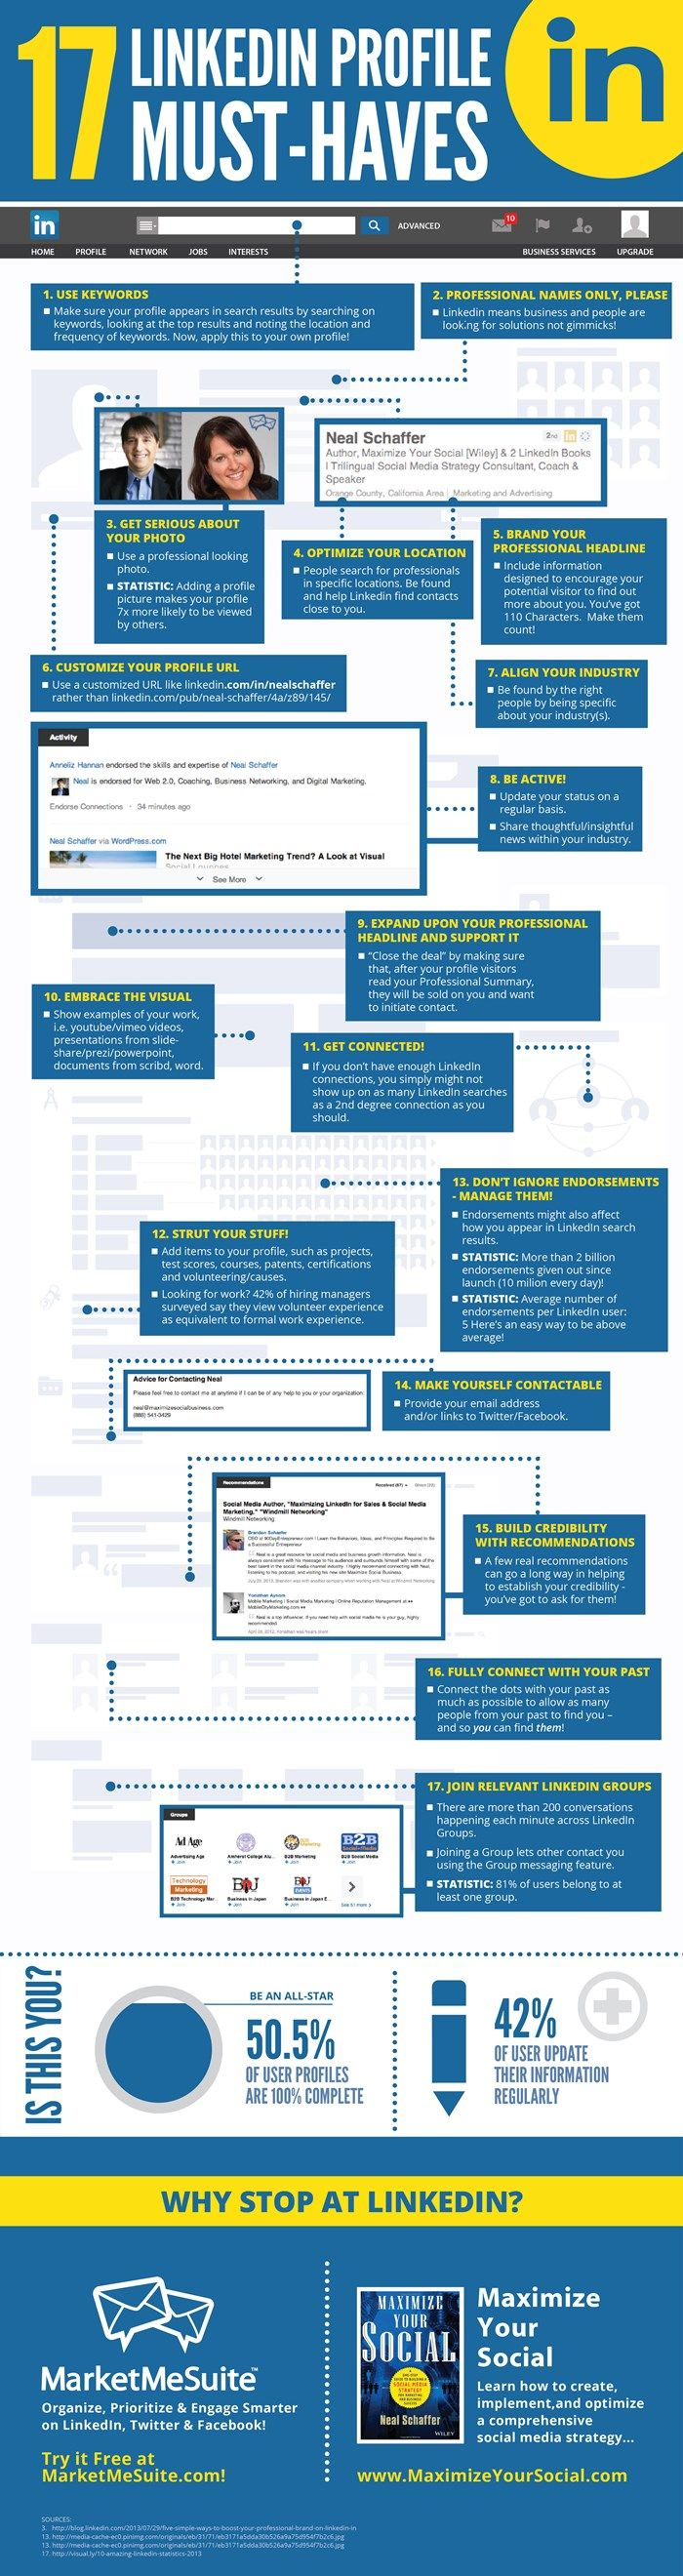 How To Upload Resume On Linkedin 17 Linkedin Profile Musthavesuse Linkedin As A Well To Explore